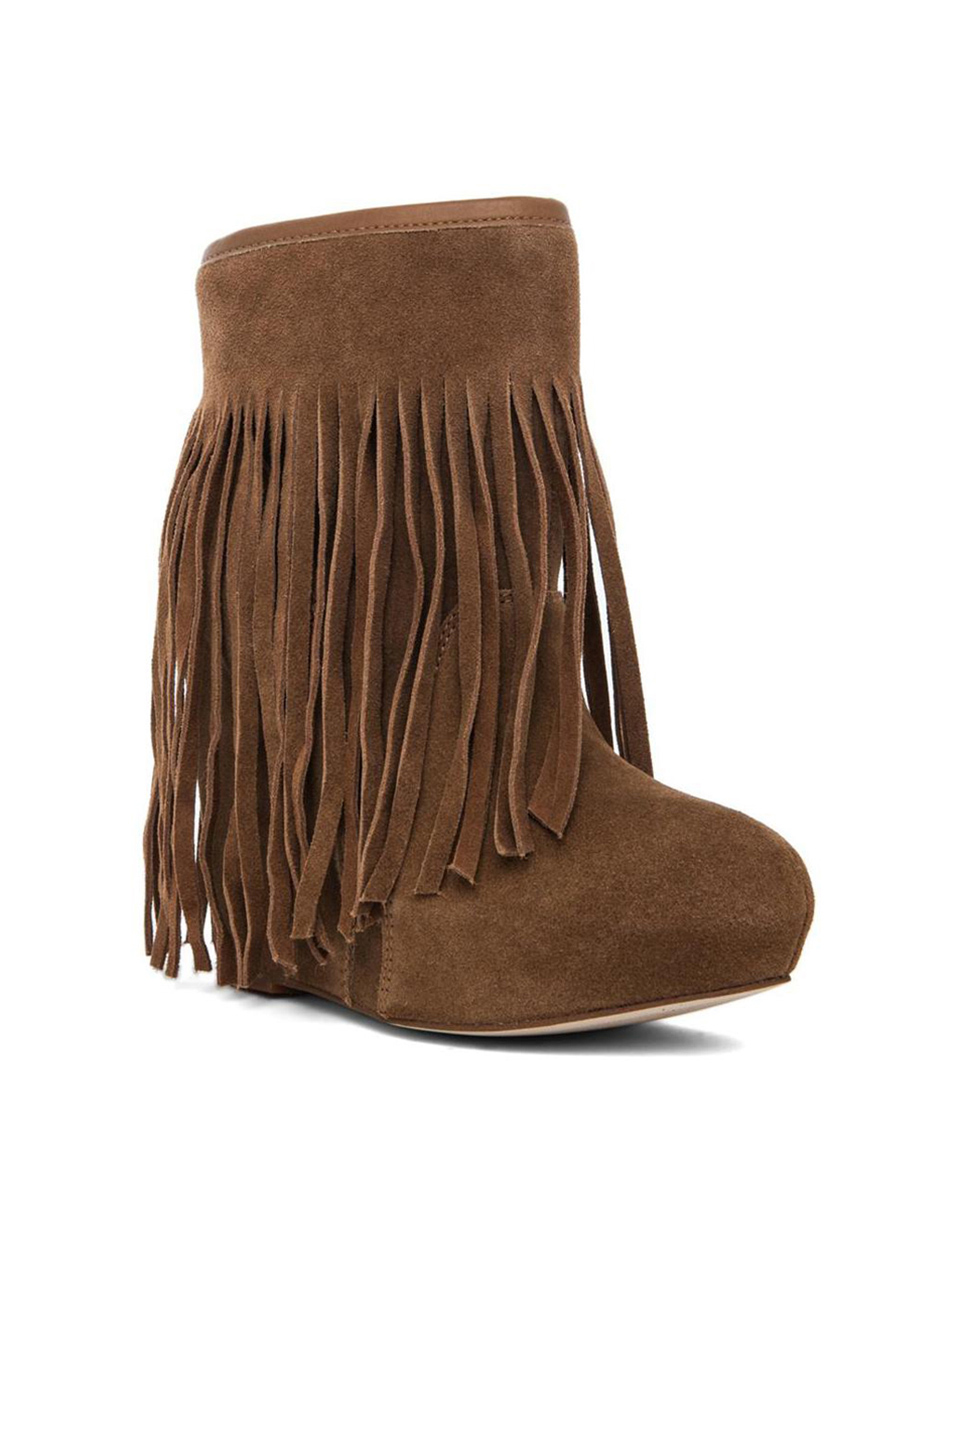 koolaburra veleta fringe wedge boot in chestnut revolve